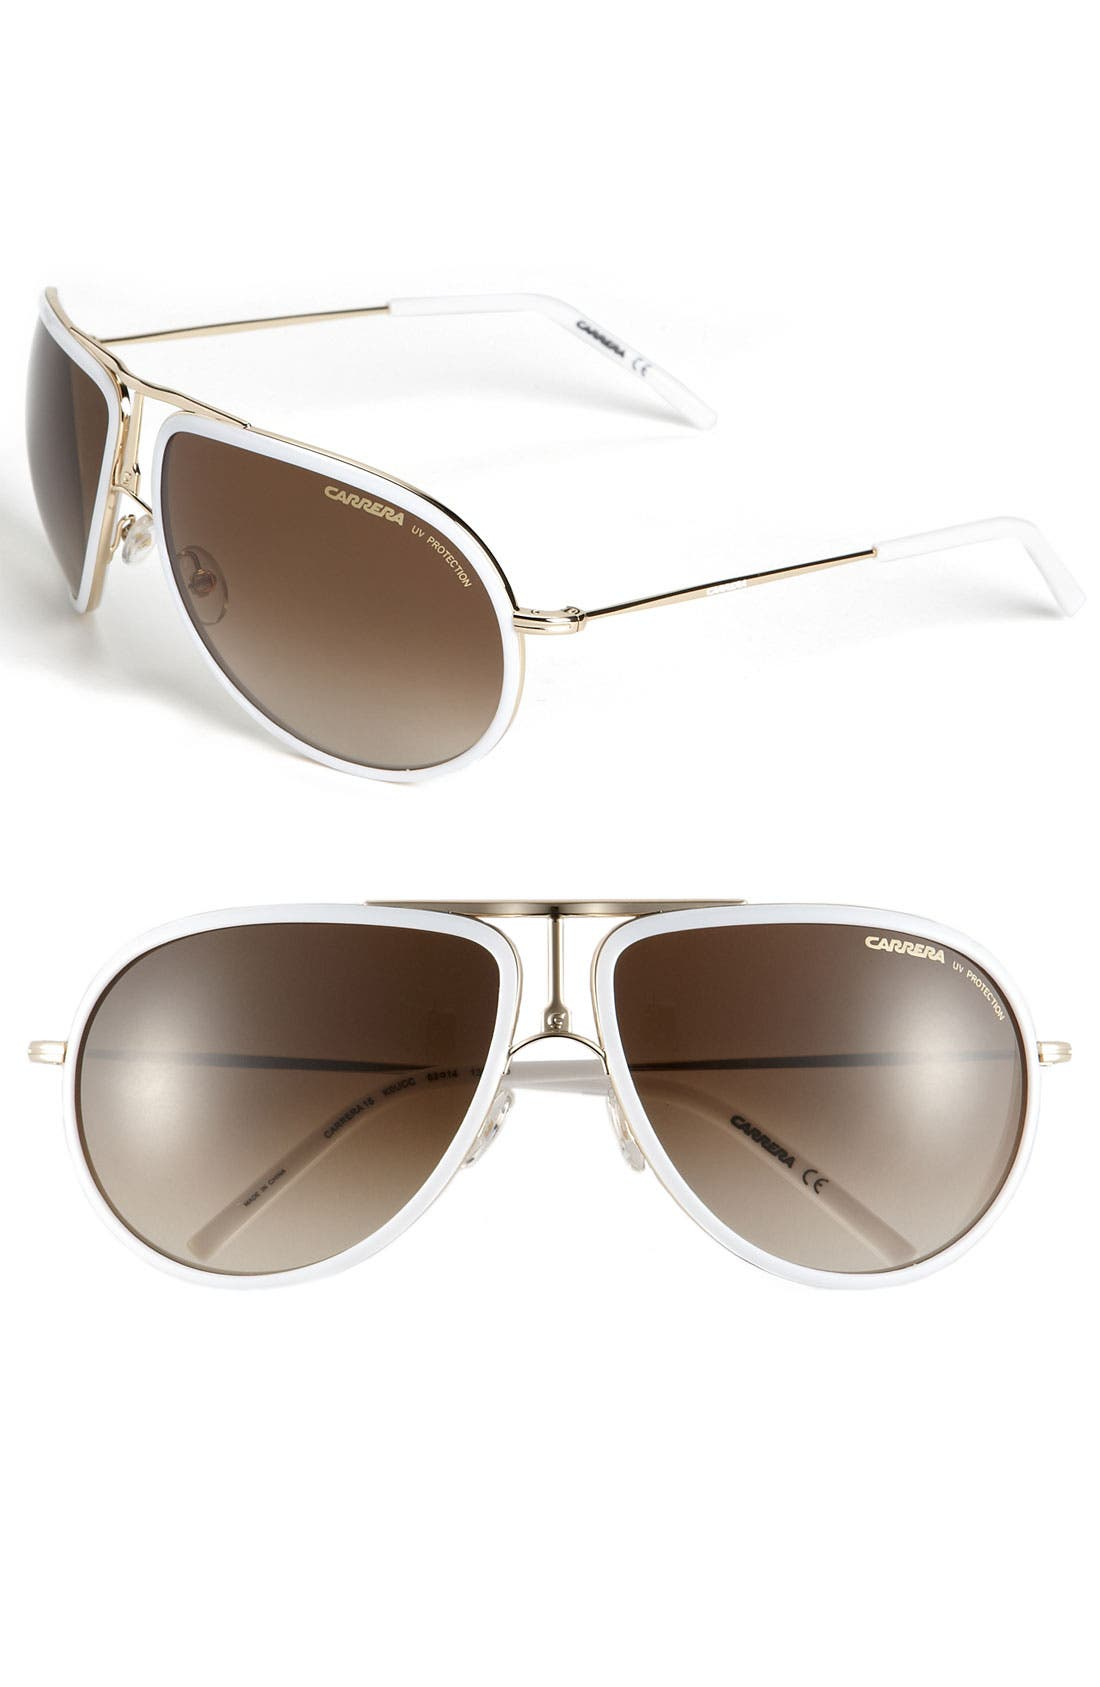 Alternate Image 1 Selected - Carrera Eyewear 63mm Metal Aviator Sunglasses